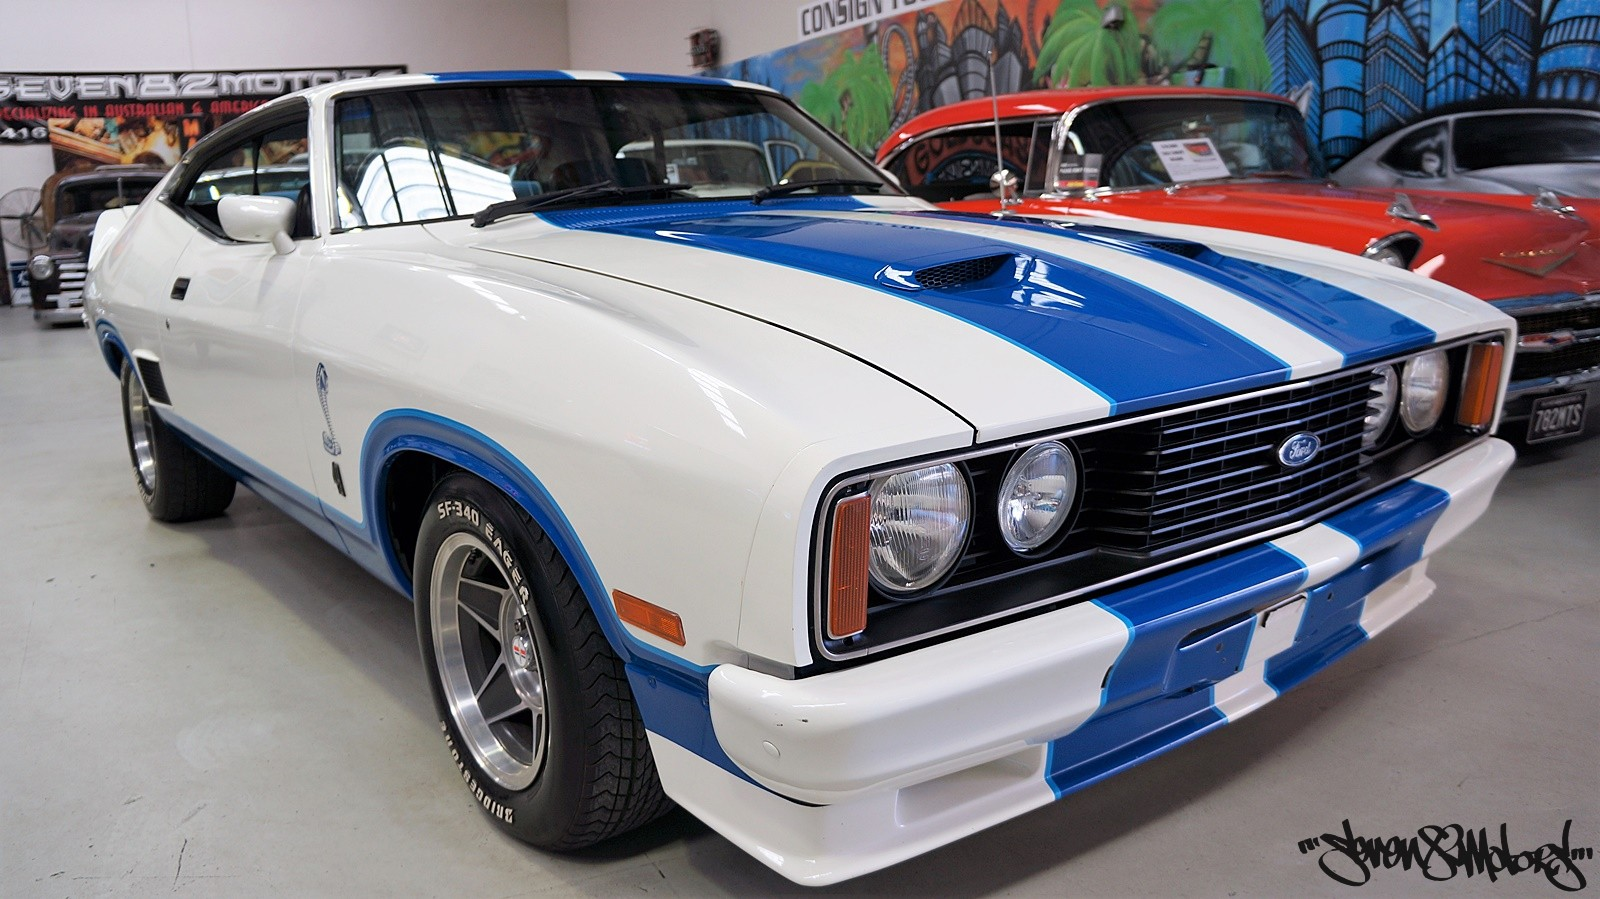 Sold 1978 Xc Falcon Cobra Hardtop Seven82motors